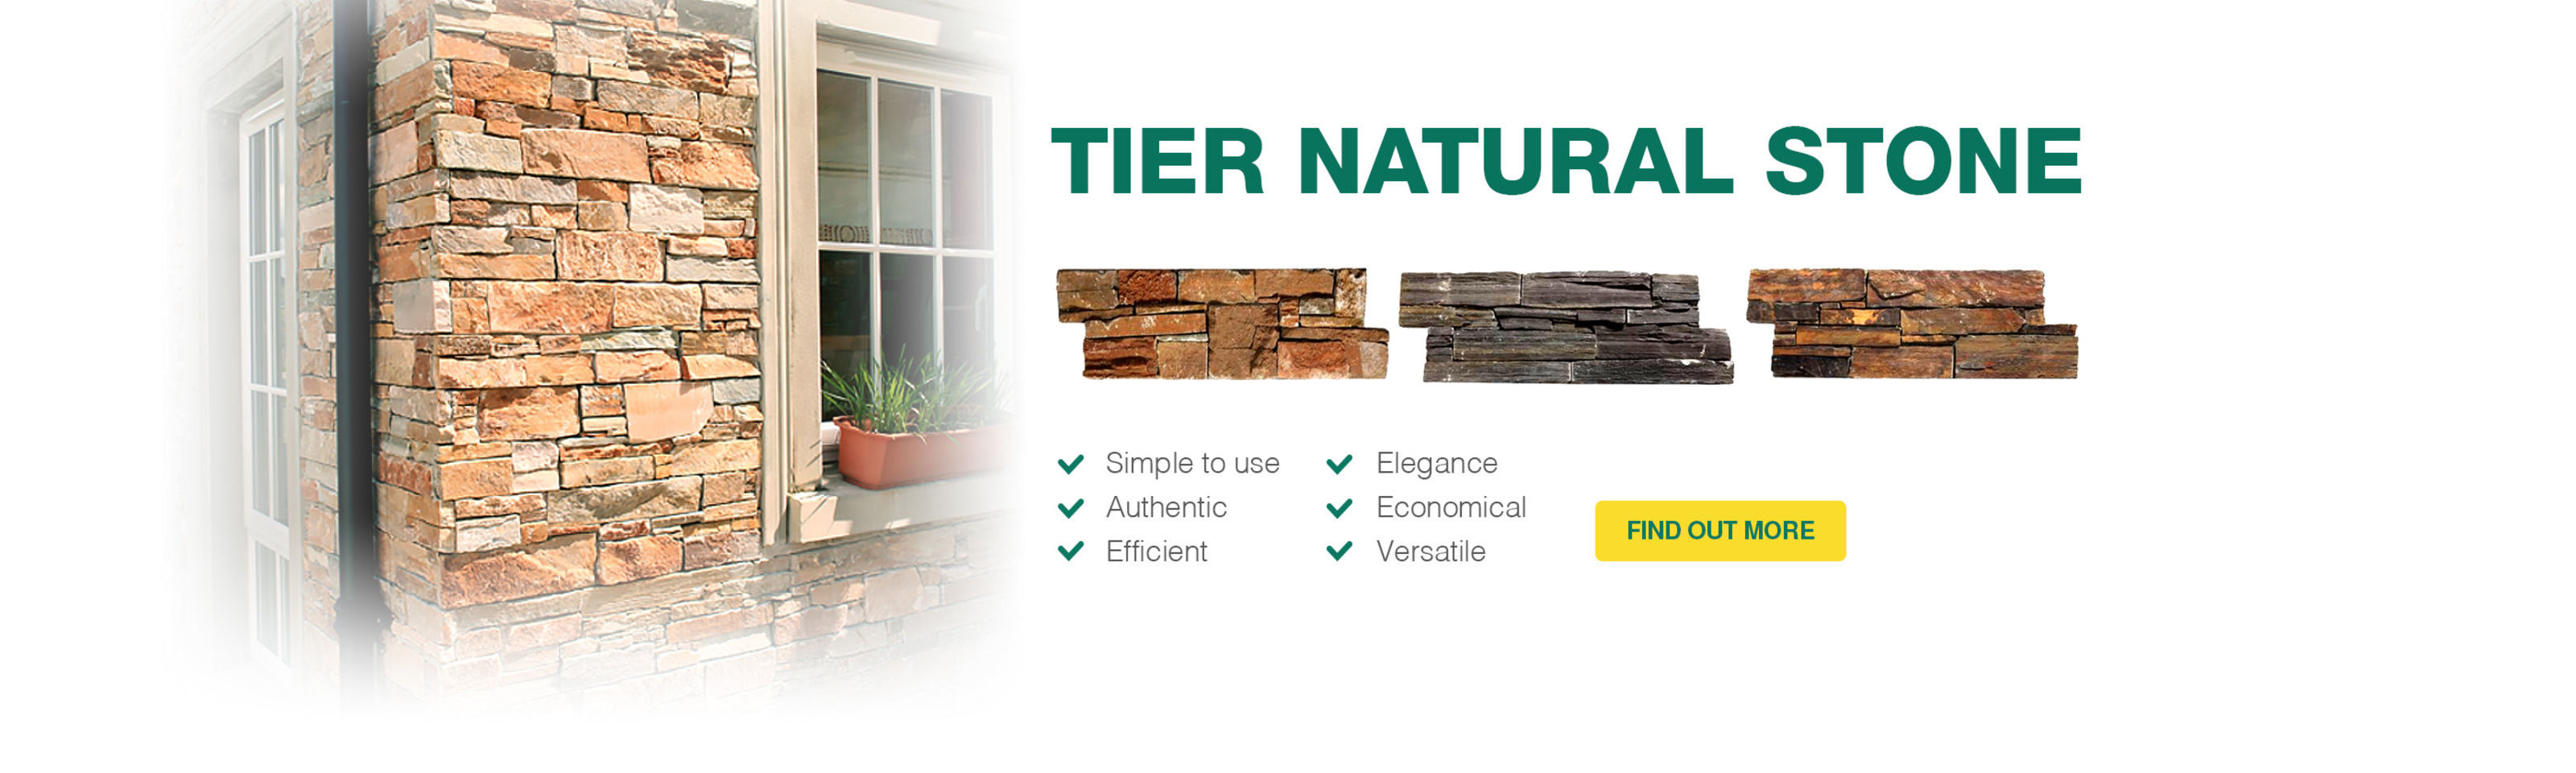 Tier Natural Stone